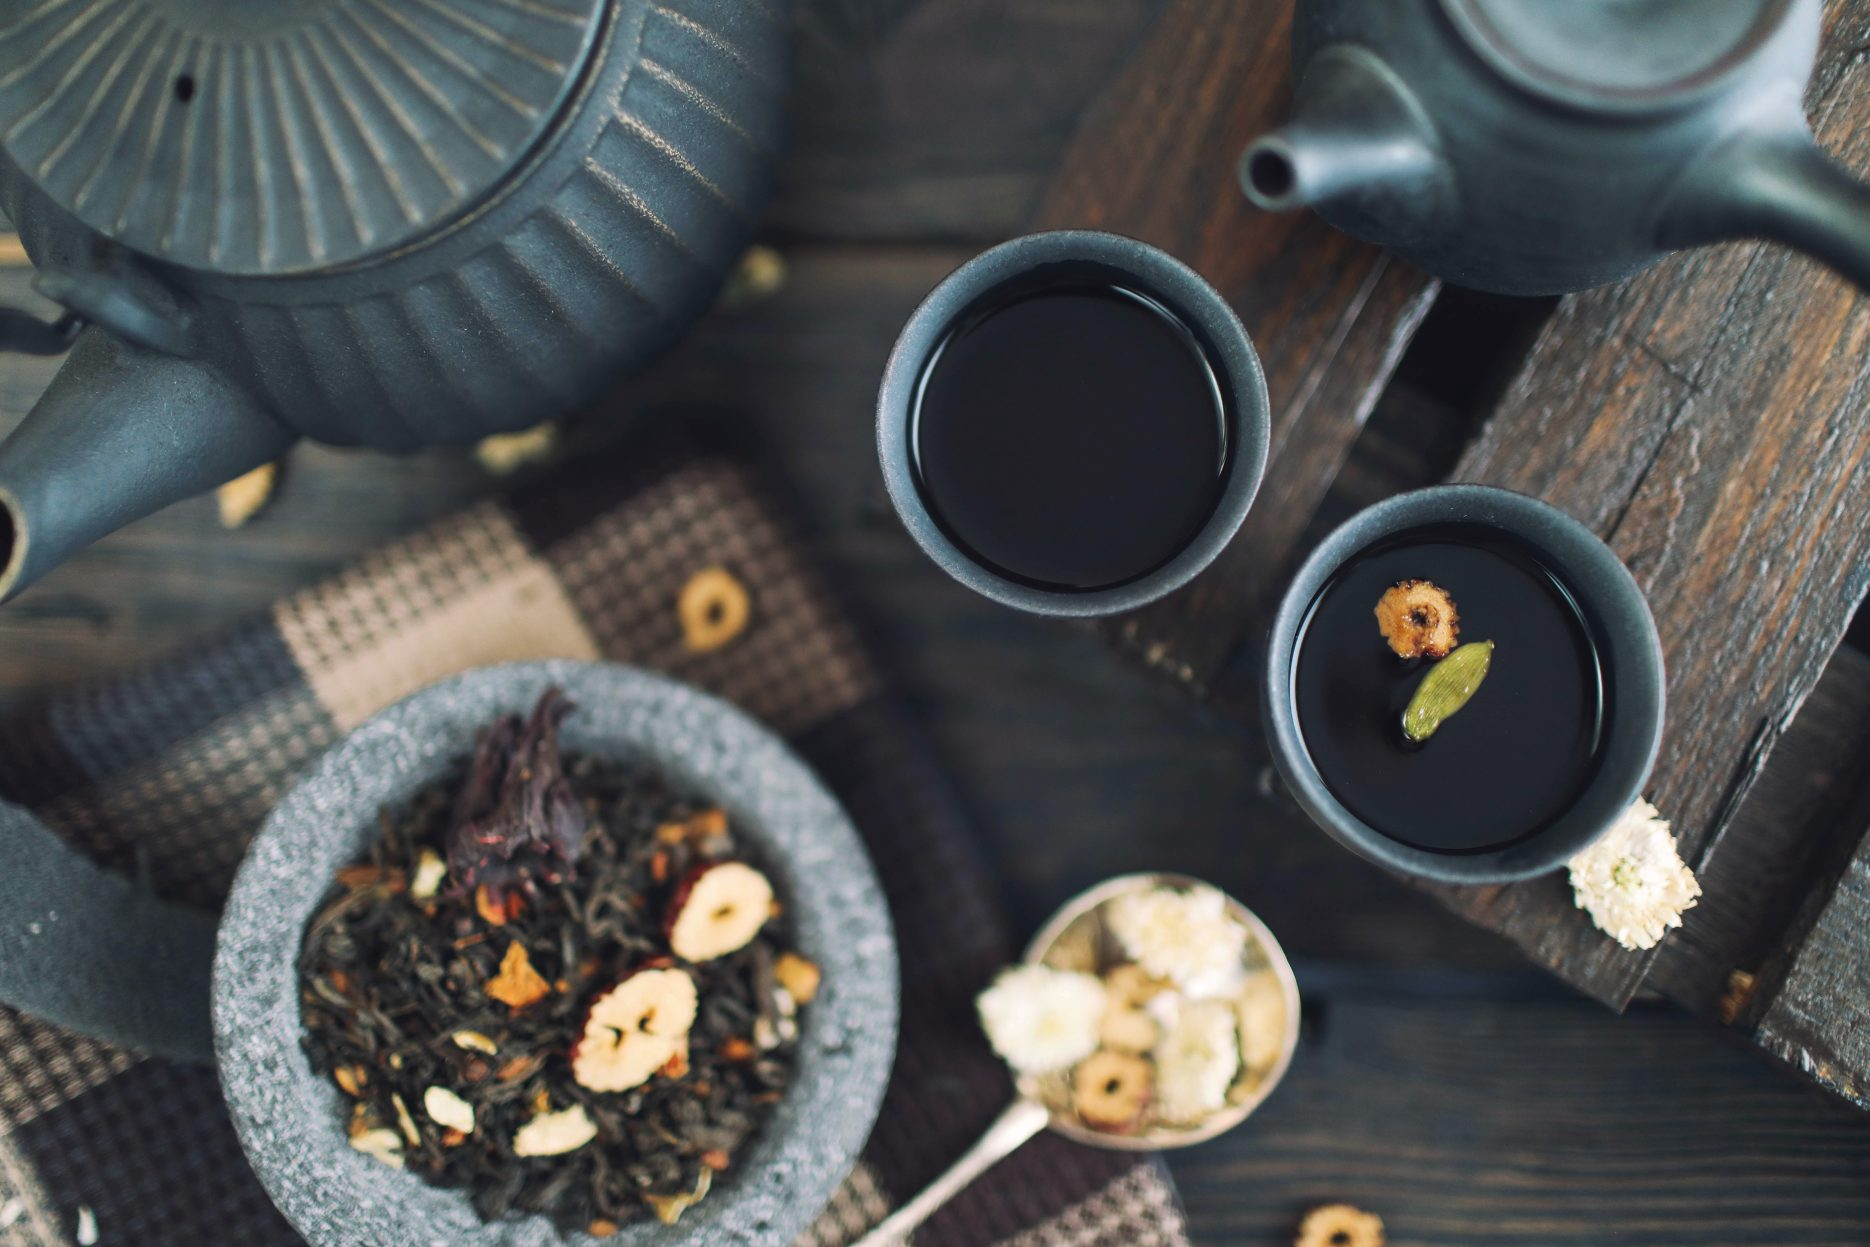 Traditional Chinese Medicine remedies